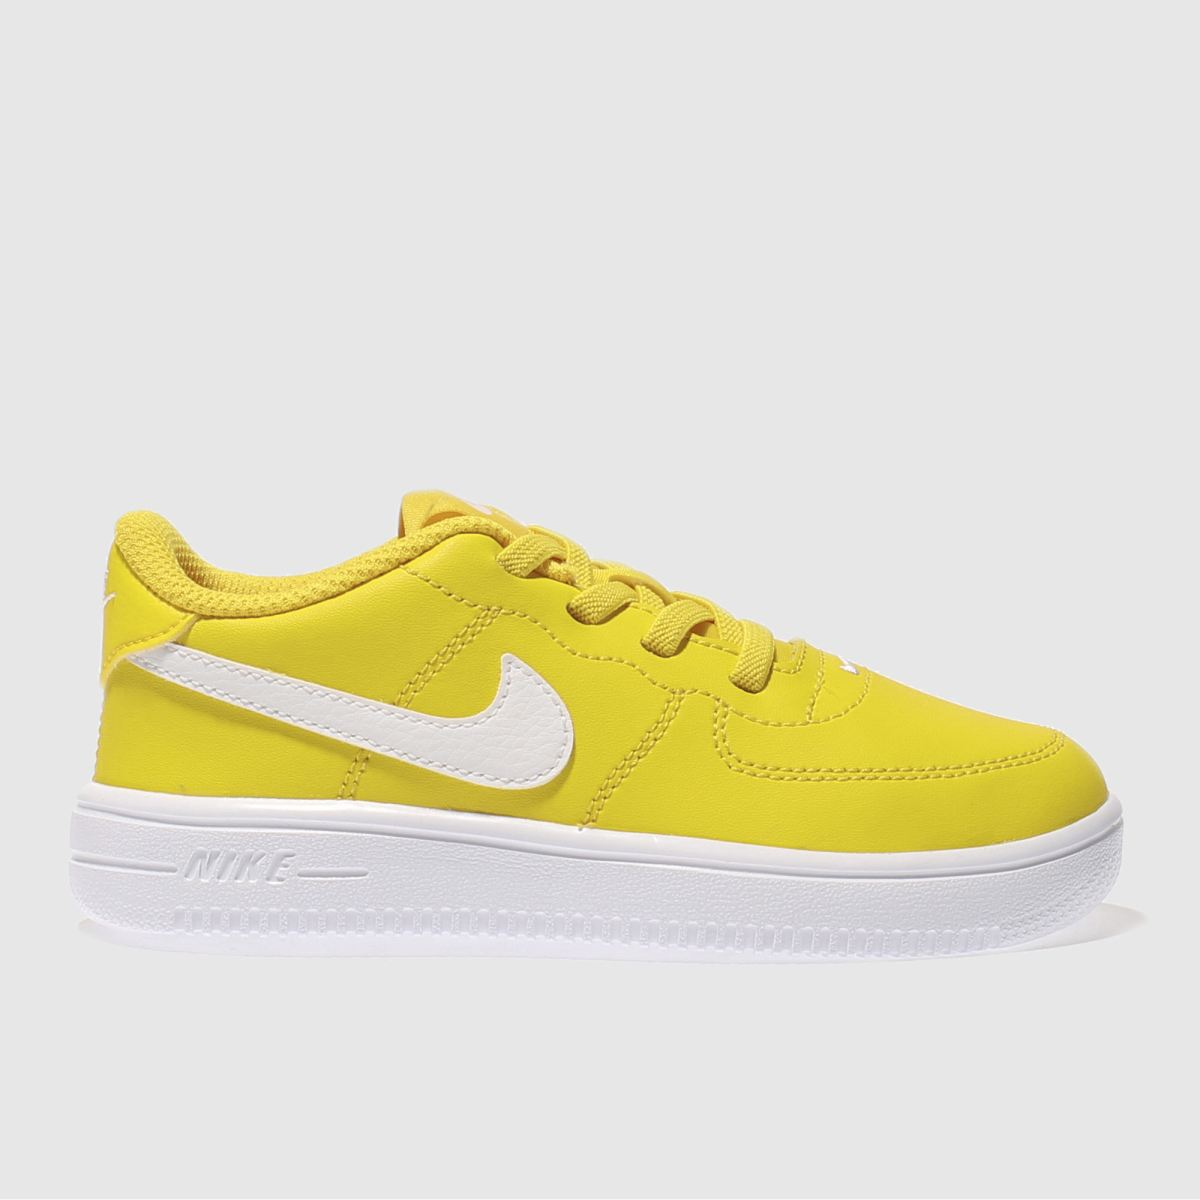 Nike Yellow Force 1 18 Bt Unisex Toddler Toddler